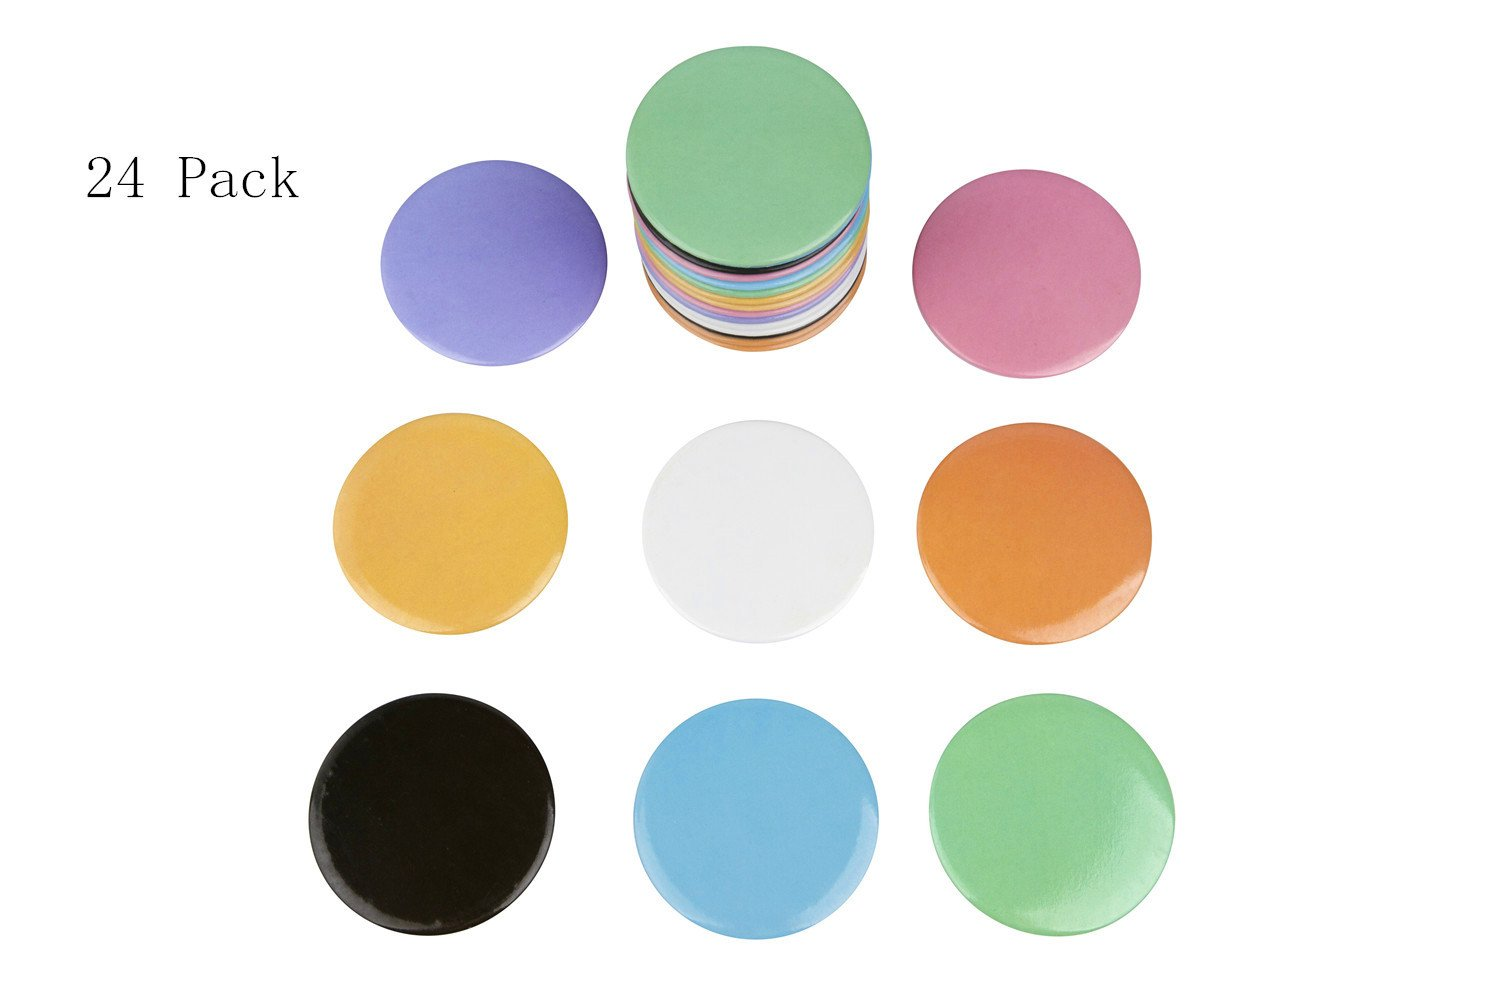 Compact Mirror Bulk, Round Makeup Glass Mirror for Purse Great Gift 2.5 Inch 8 Colors Pack of 24